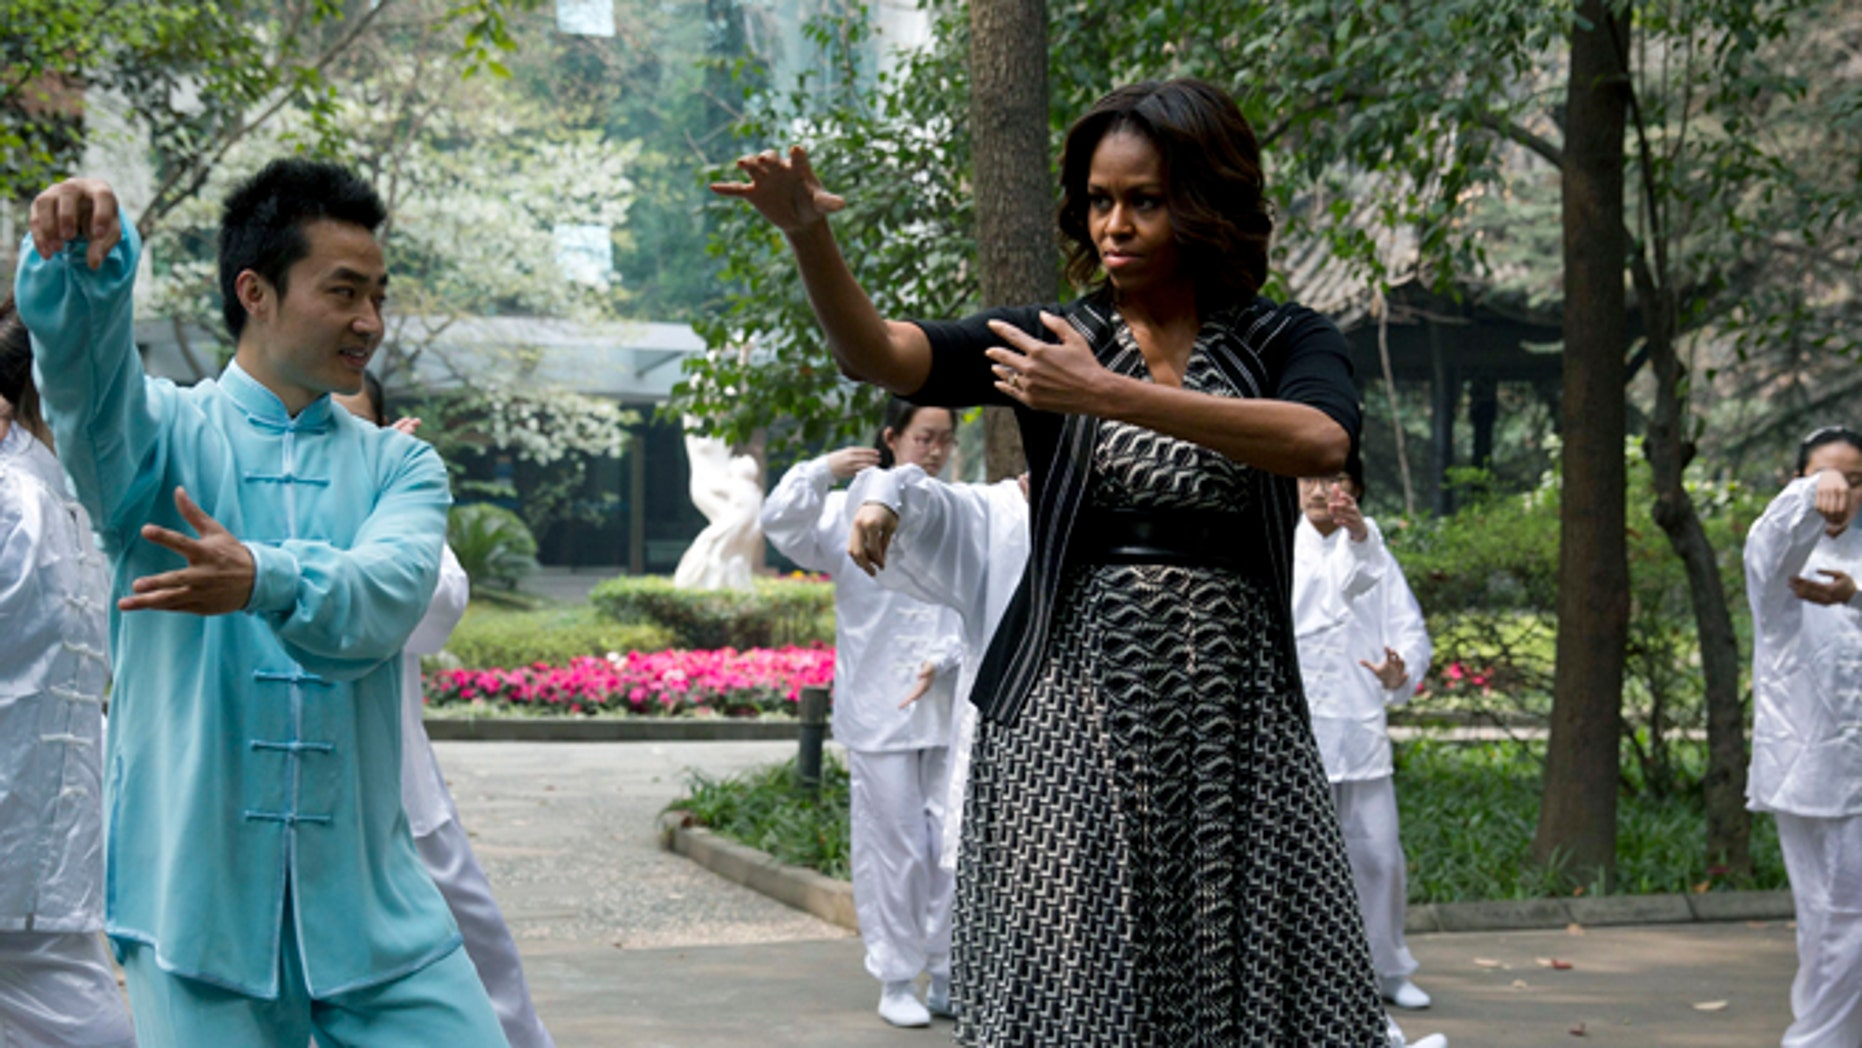 March 25, 2014: First lady Michelle Obama practices tai chi at a high school in Chengdu in southwest China's Sichuan province.